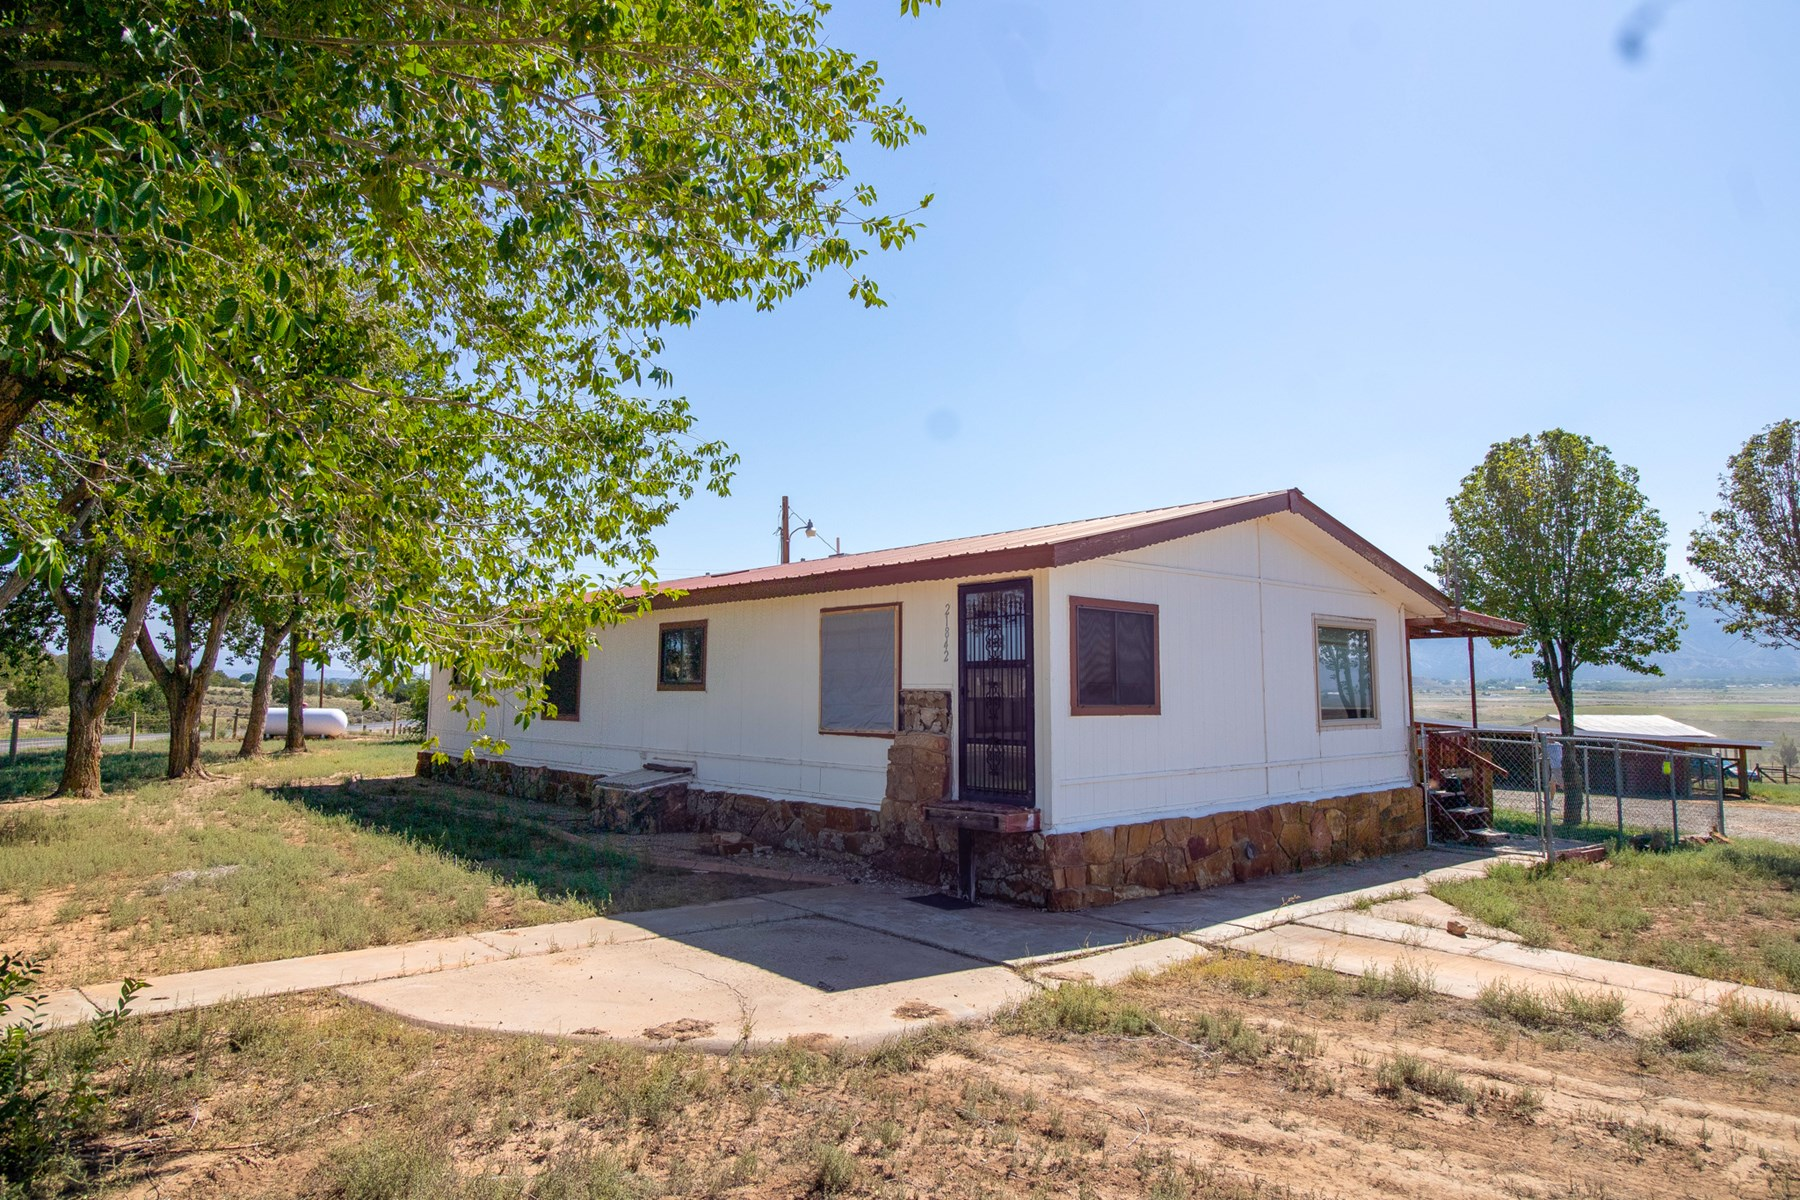 Country Home With Mountain views in Cortez, CO For Sale!